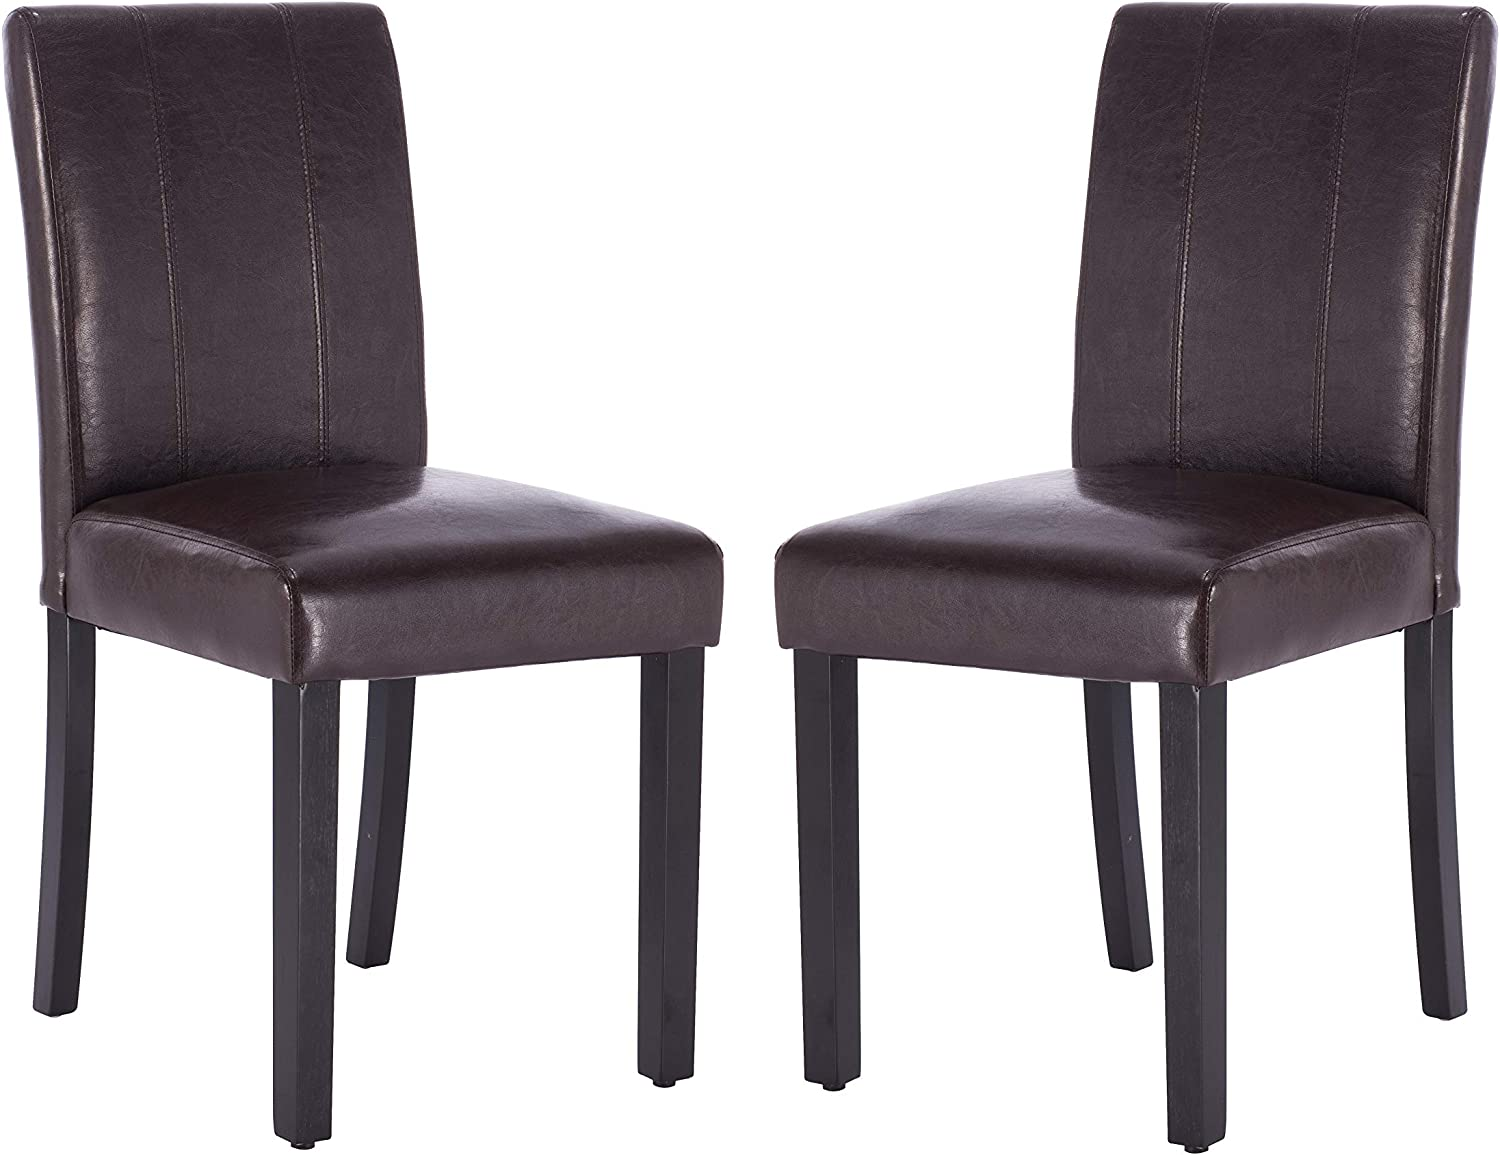 Per-Home Dining Chairs Set of 2 Solid Wood Leatherette Parson Chairs Black